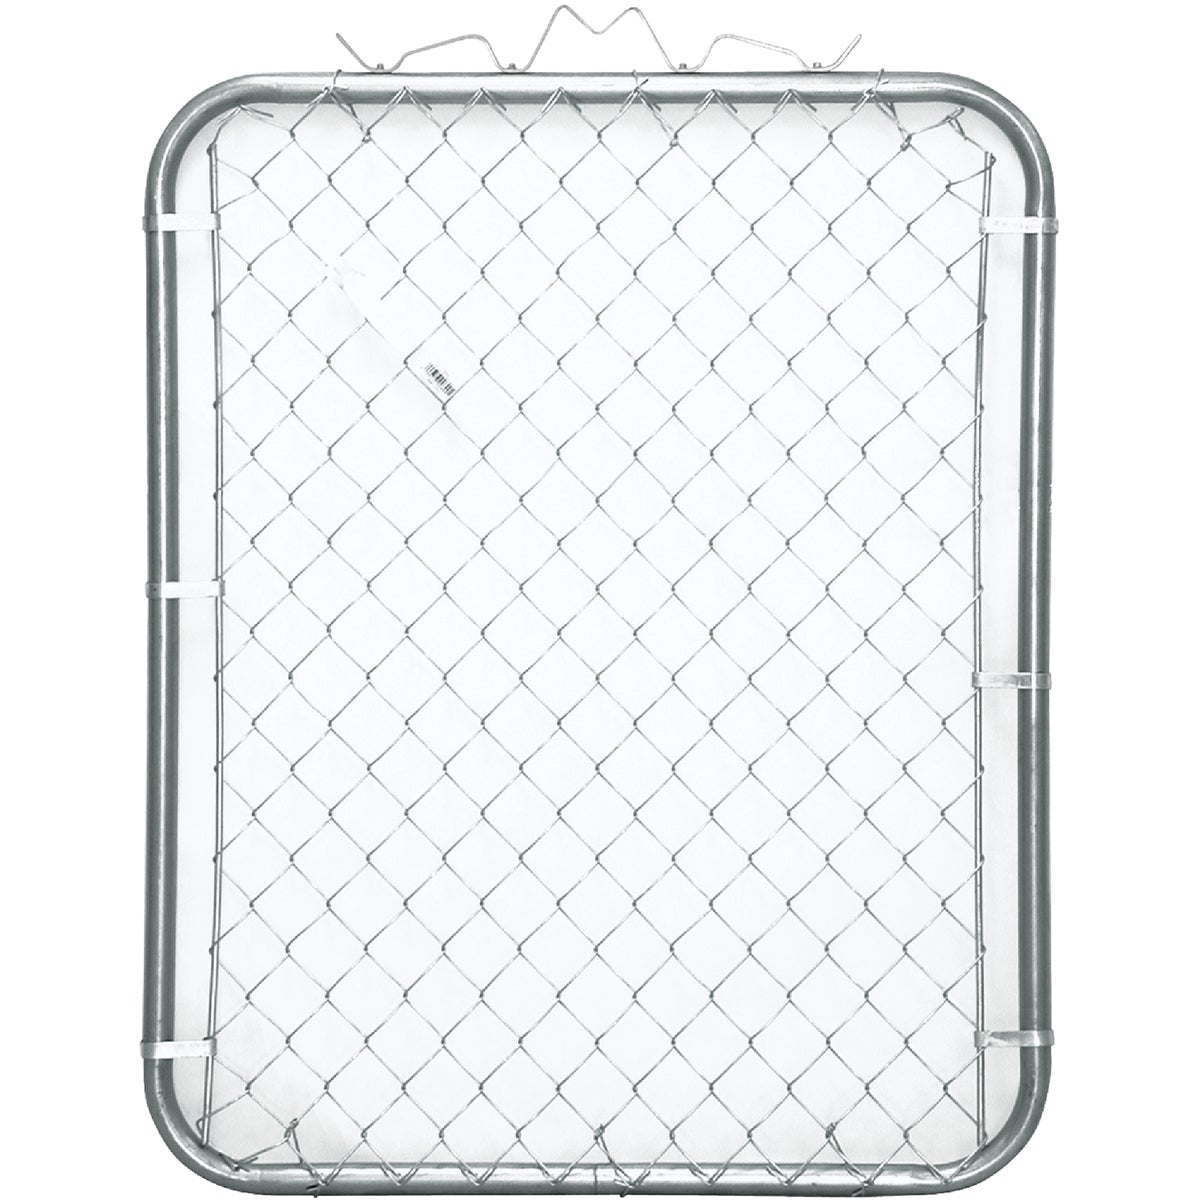 "48""X48"" SINGLE WALK GATE - 328332A by Midwest Air Tech"